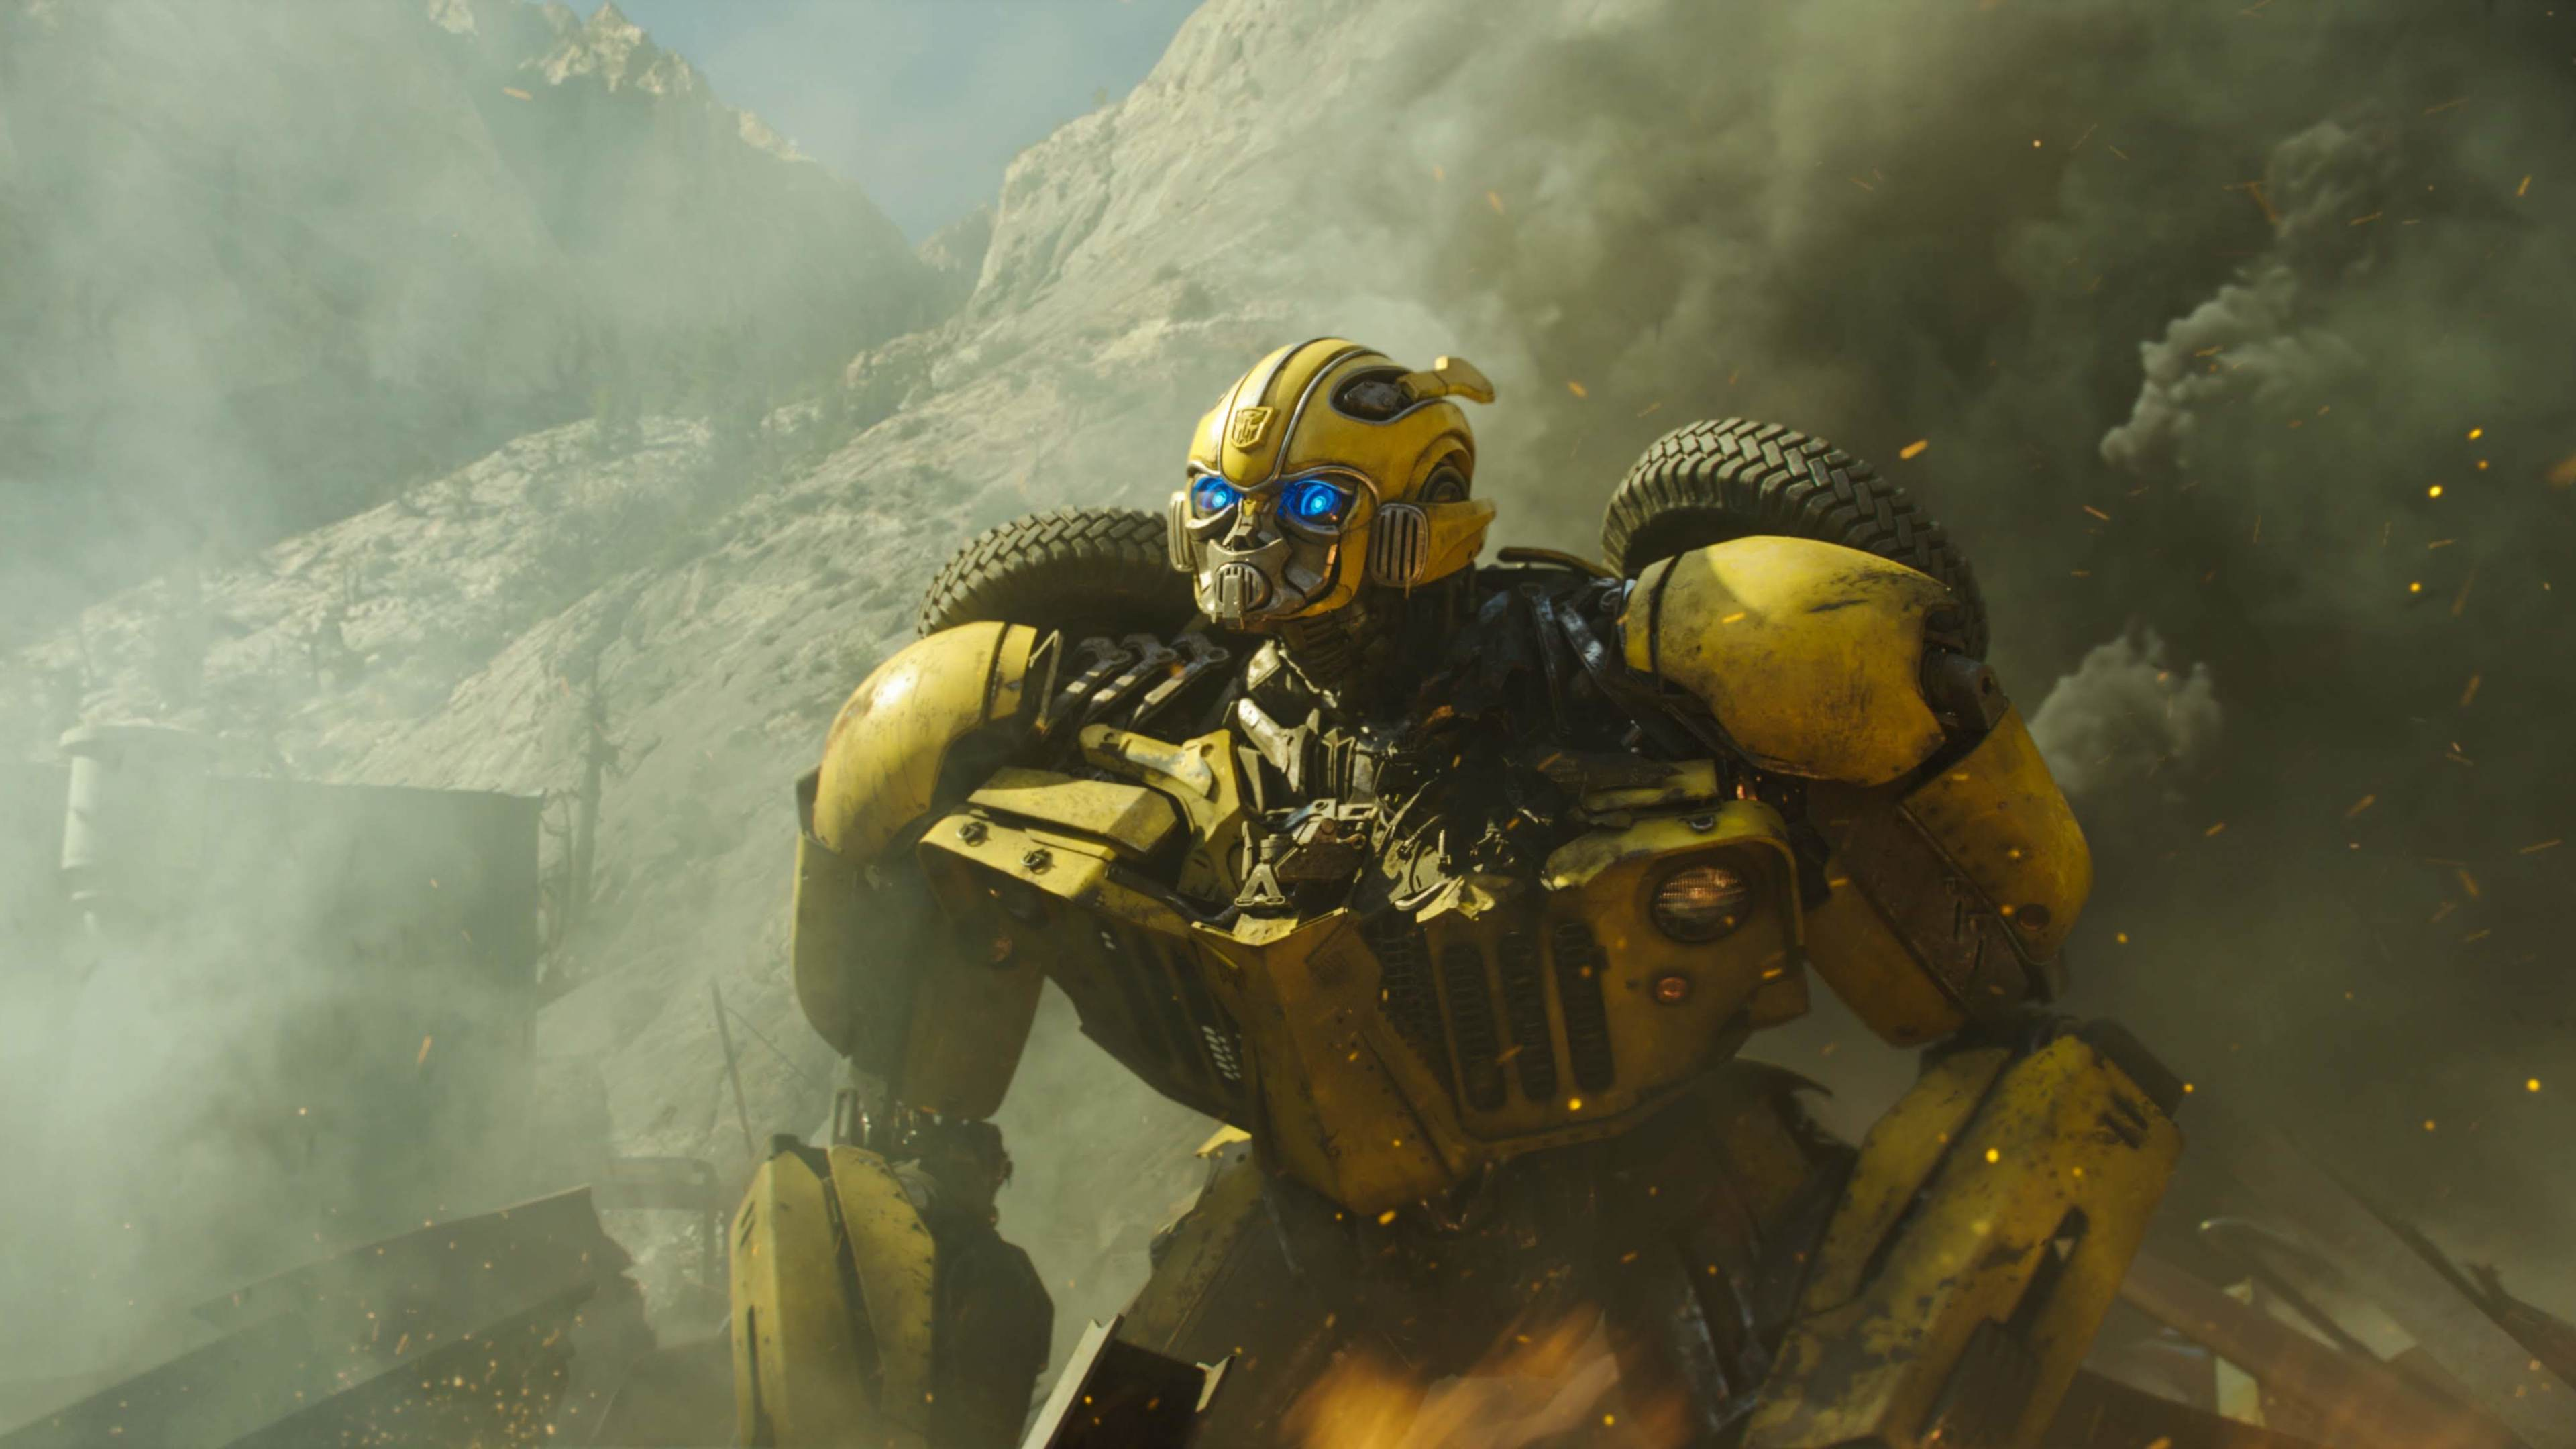 bumblebee 4k 2019 1548528198 - Bumblebee 4k 2019 - movies wallpapers, hd-wallpapers, bumblebee wallpapers, 4k-wallpapers, 2018-movies-wallpapers